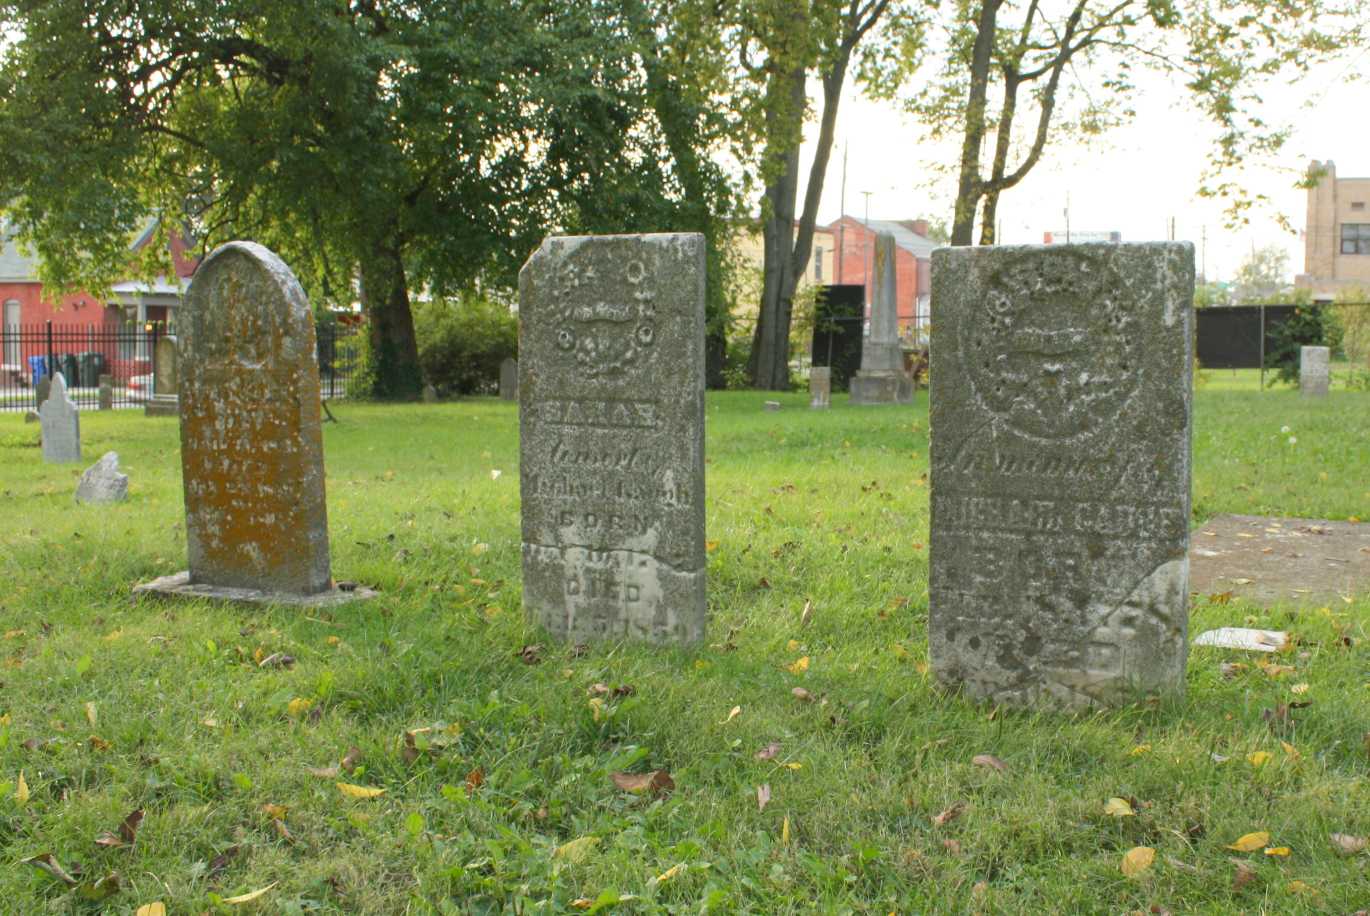 Another Image of Graves in The Old Episcopal Burying Grounds